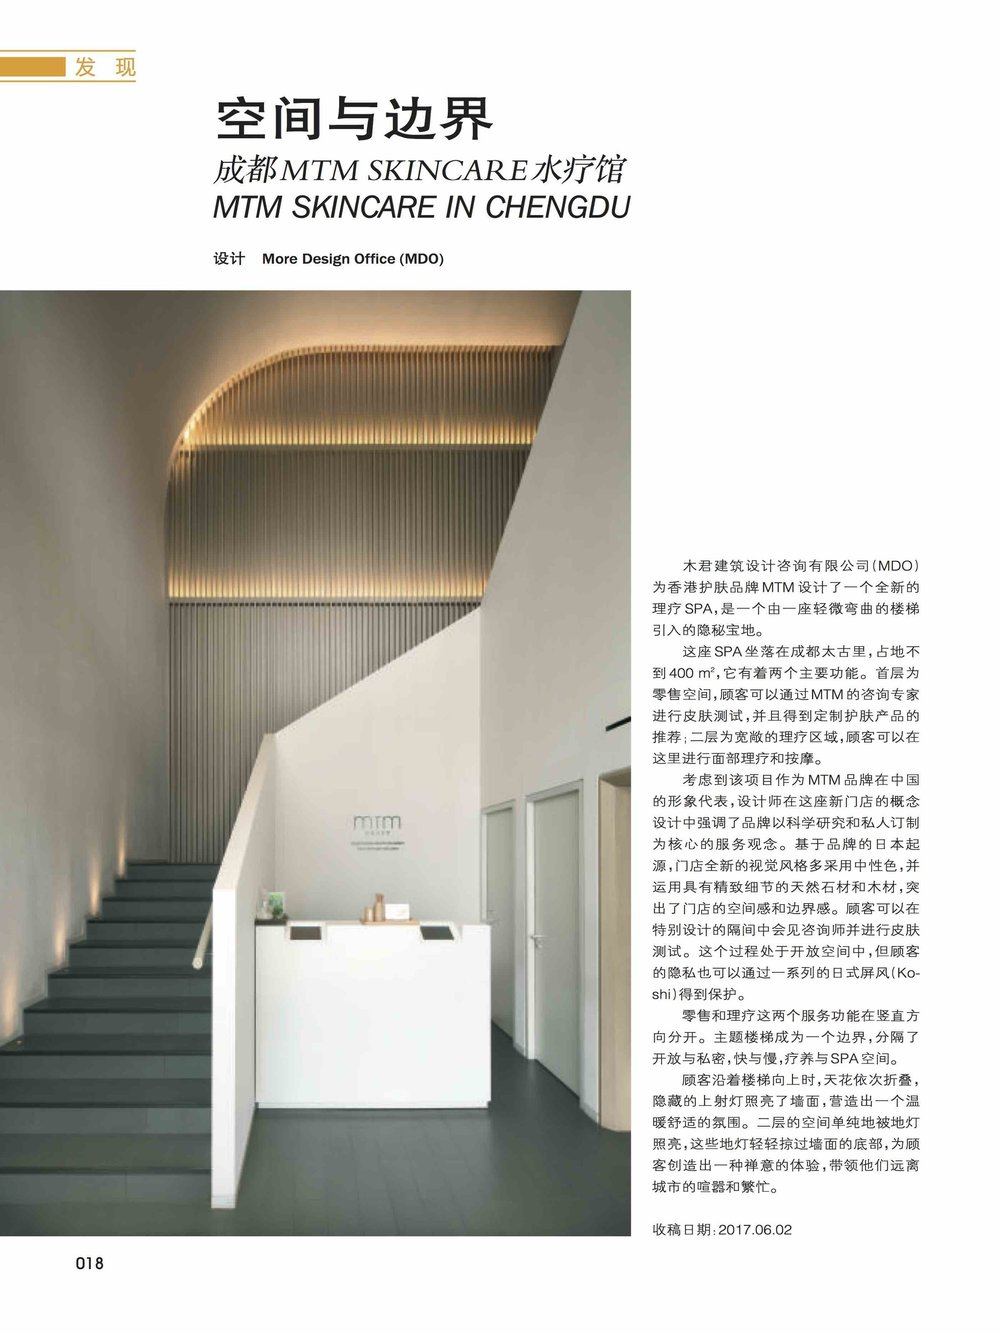 id+c | July 2017 - MTM Skincare Chengdu | More Design Office (MDO)